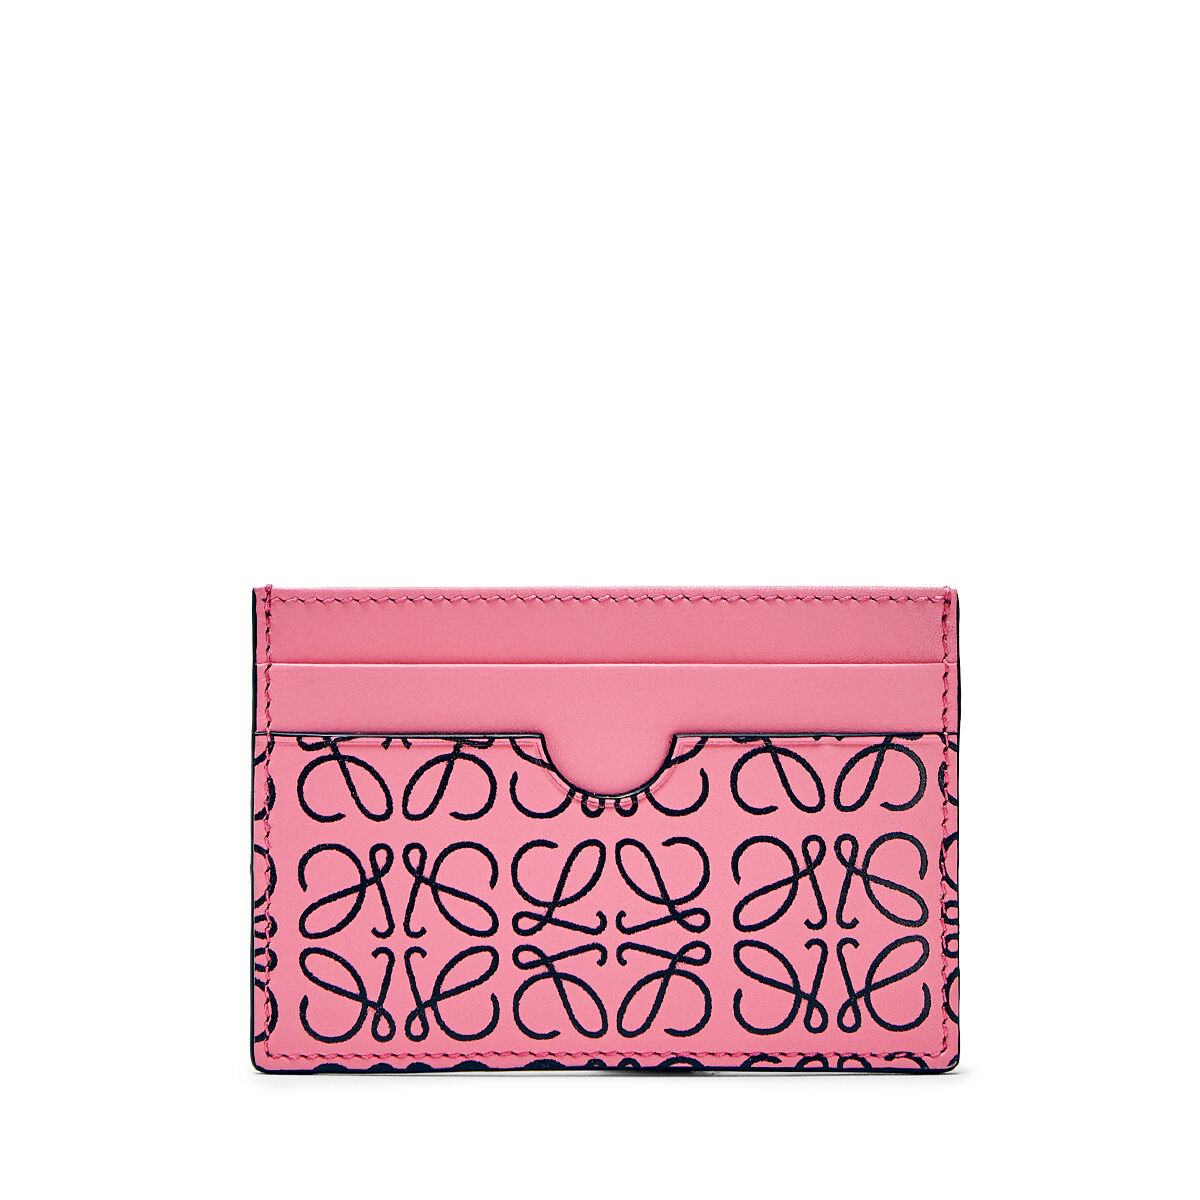 LOEWE Plain Card Holder Wild Rose/Black all